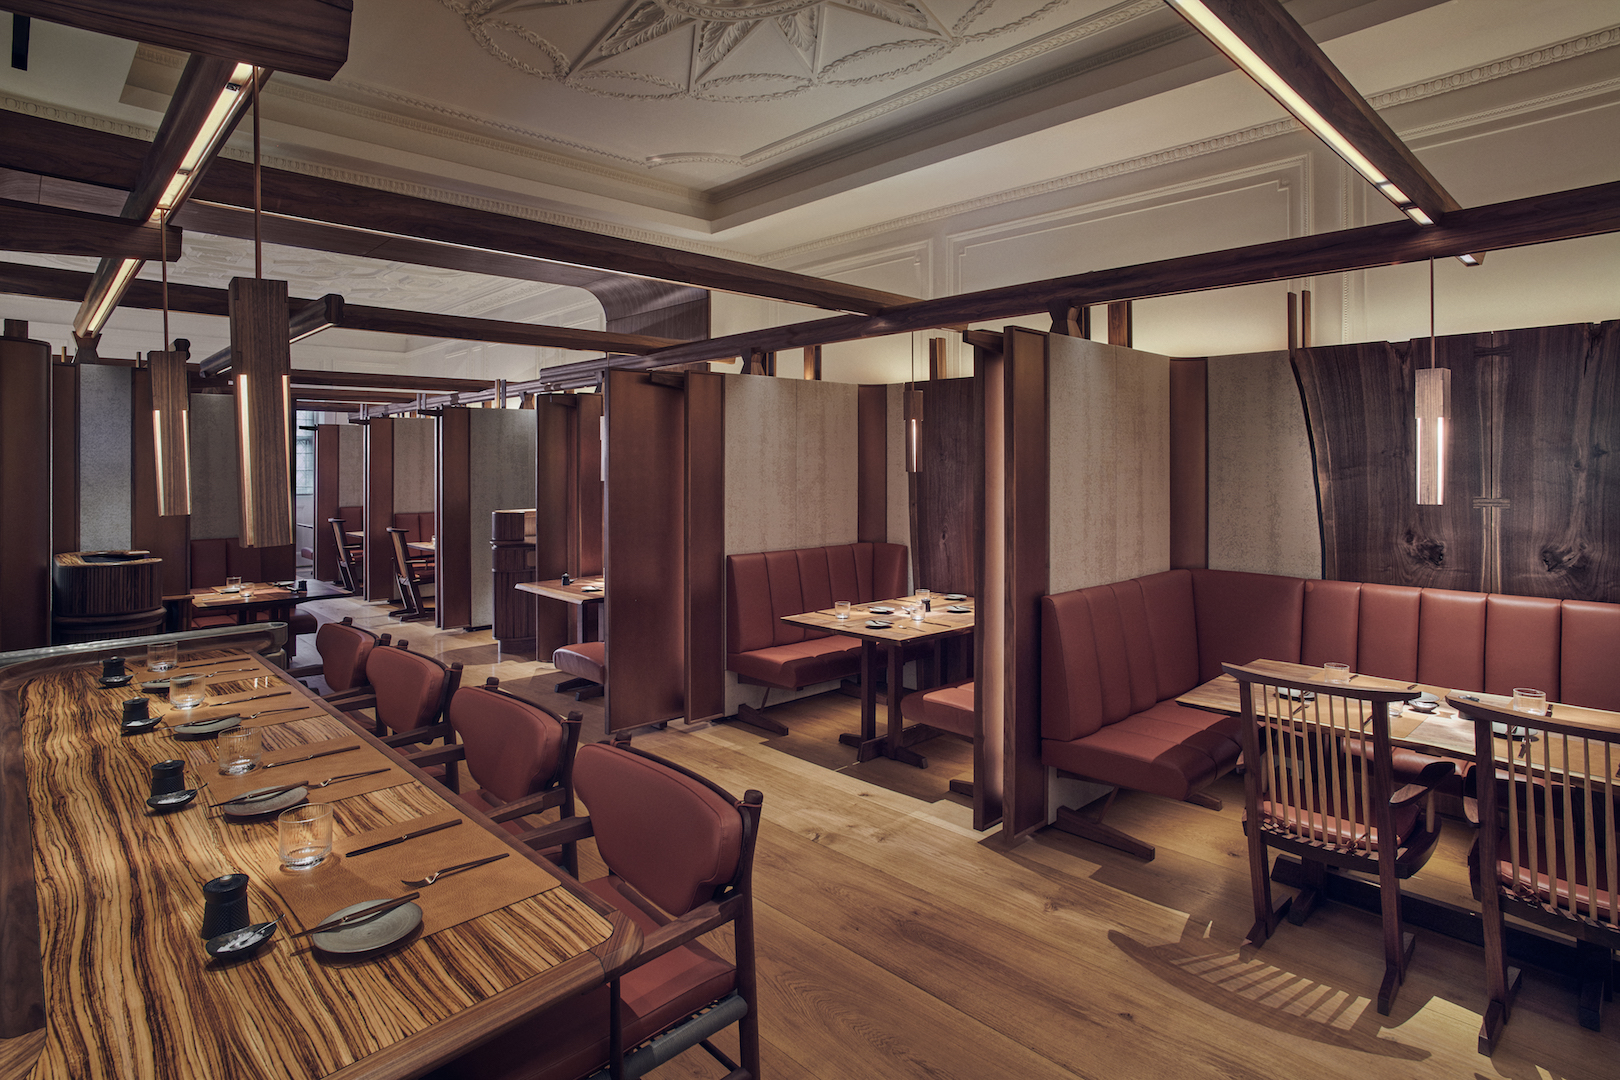 The Connaught Grill reopens at The Connaught Hotel in London